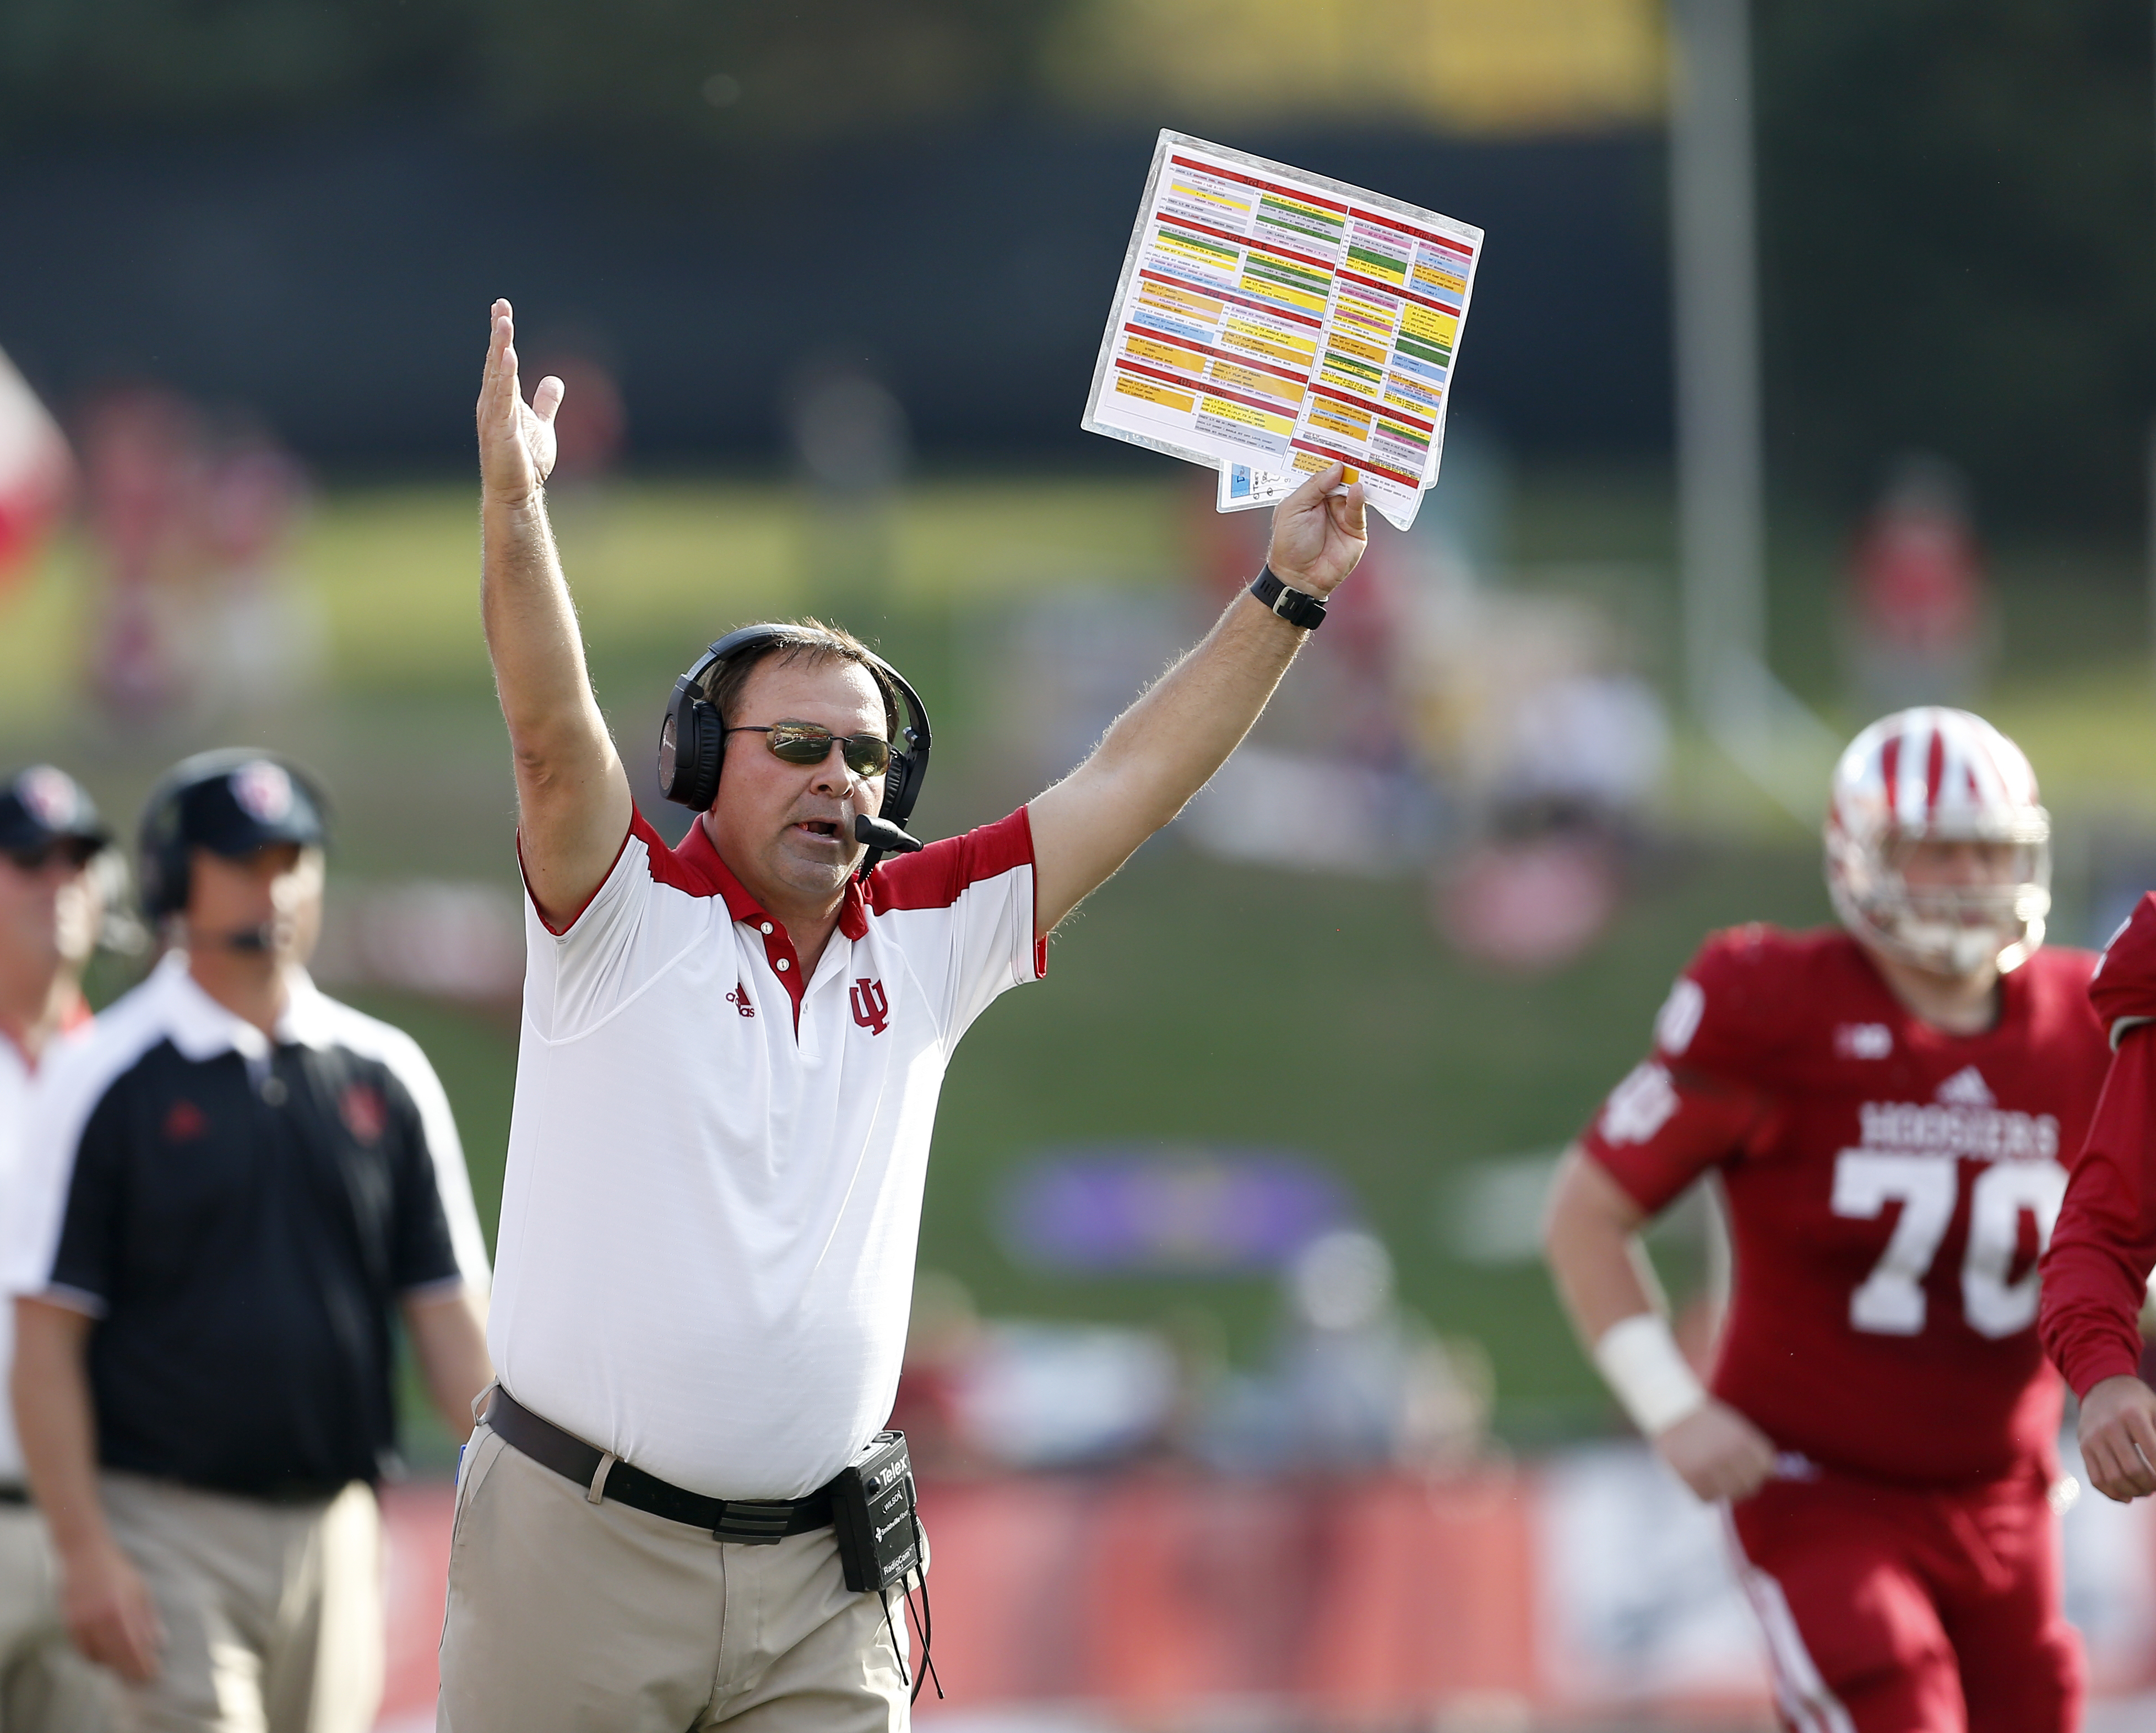 Indiana head coach Kevin Wilson signals a touchdown for Indiana against Maryland during the first half of an NCAA college football game in Bloomington, Ind., Saturday, Oct. 29, 2016. Indiana won the game 42-36. (AP Photo/Sam Riche)